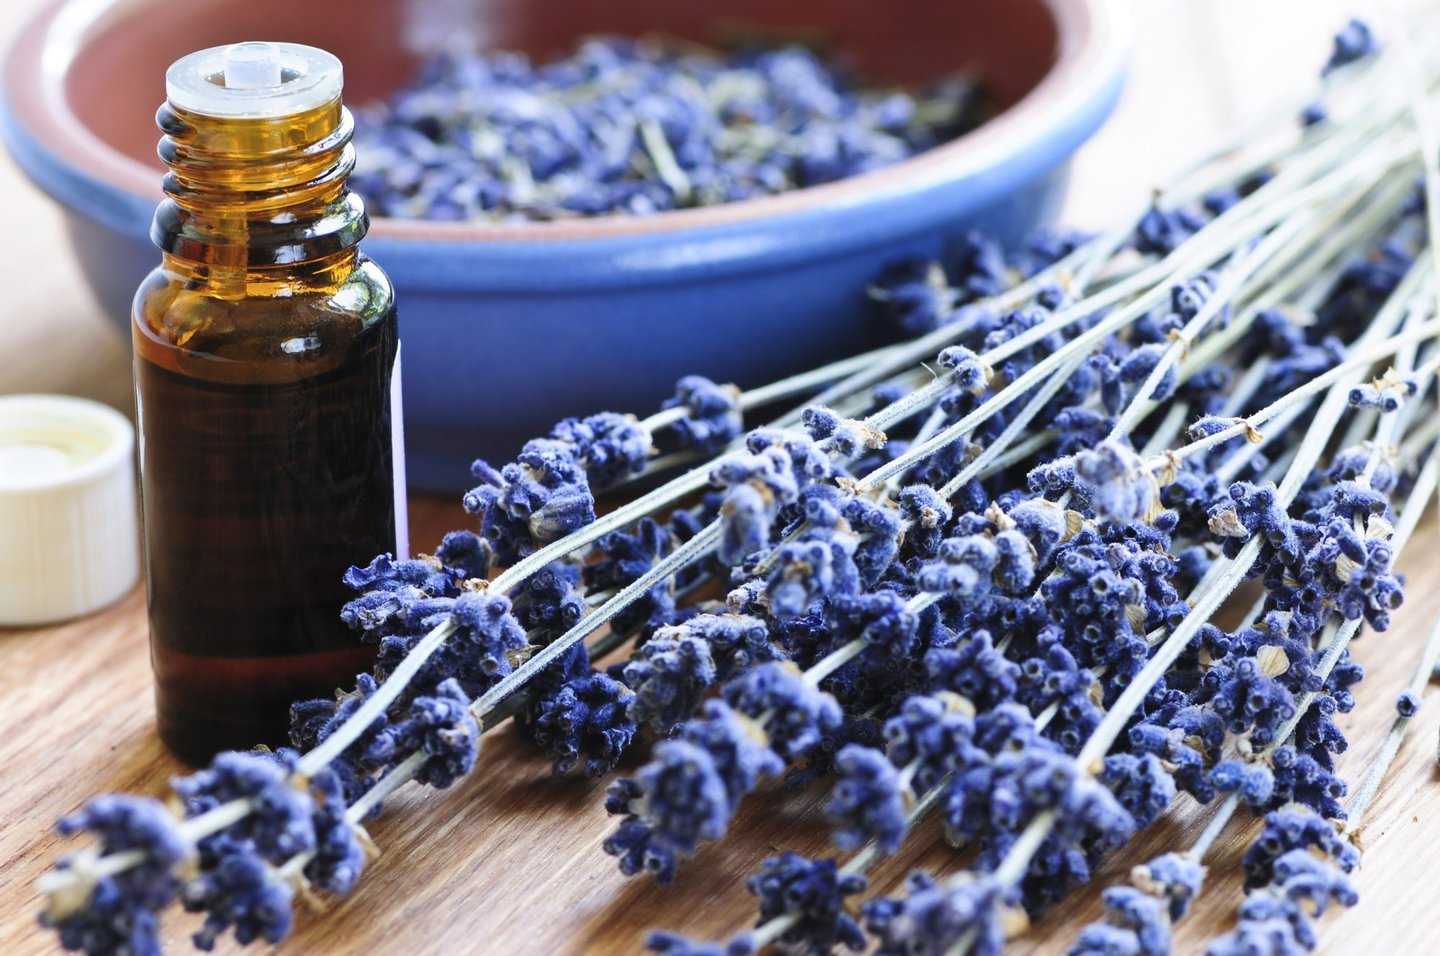 lavender, natural, organic, aroma, therapy, aromatherapy, dry, dried, herb, herbal, beauty, cosmetic, hygiene, plant, scent, scented, spa, wellness, body, care, bodycare, relaxing, relaxation, skincare, aromatic, sprig, sprigs, pampering, wellbeing, oil, essential, bottle, essence, perfume,